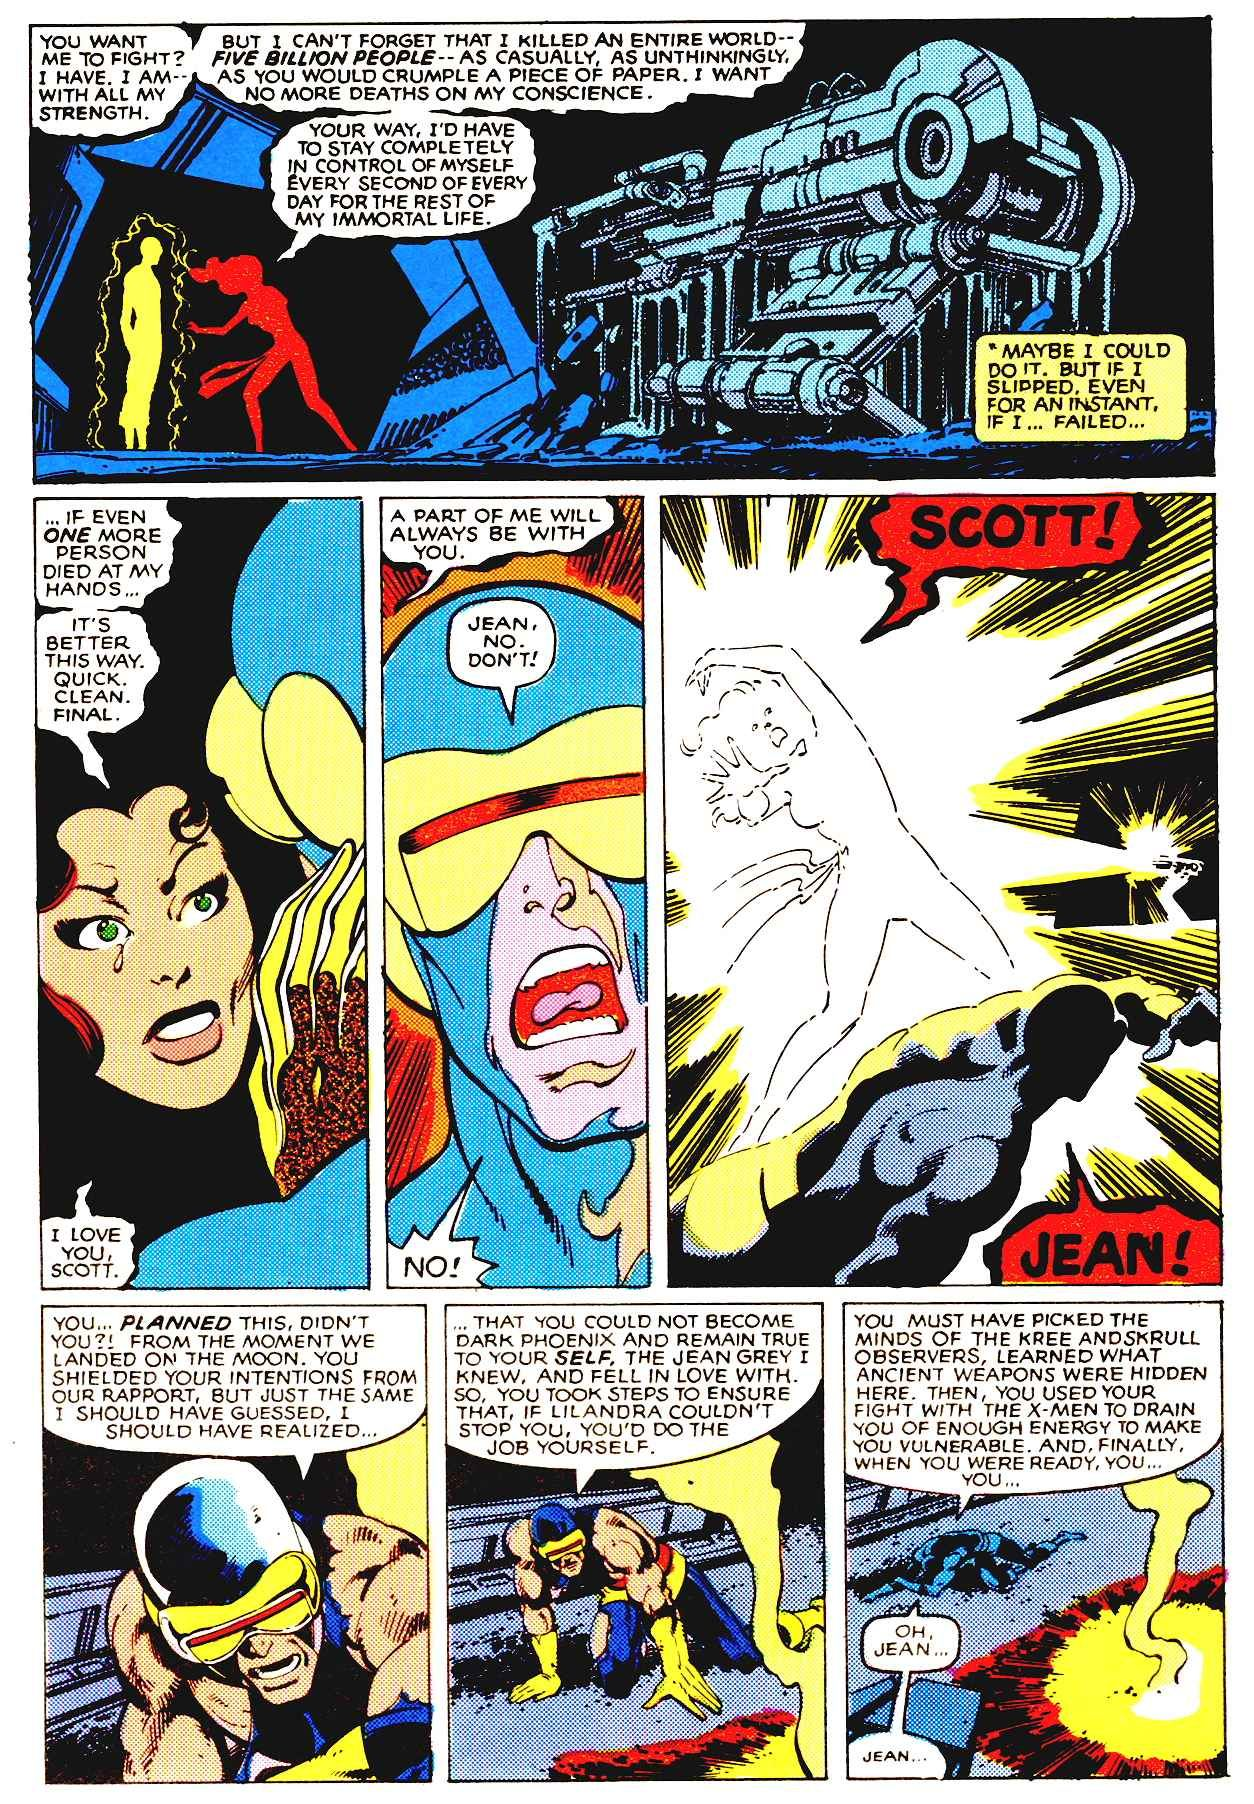 Jean Grey Sacrifices Herself To End The Nightmare Of The Dark Phoenix Uncanny X Men 137 Comics X Men Classic Comics